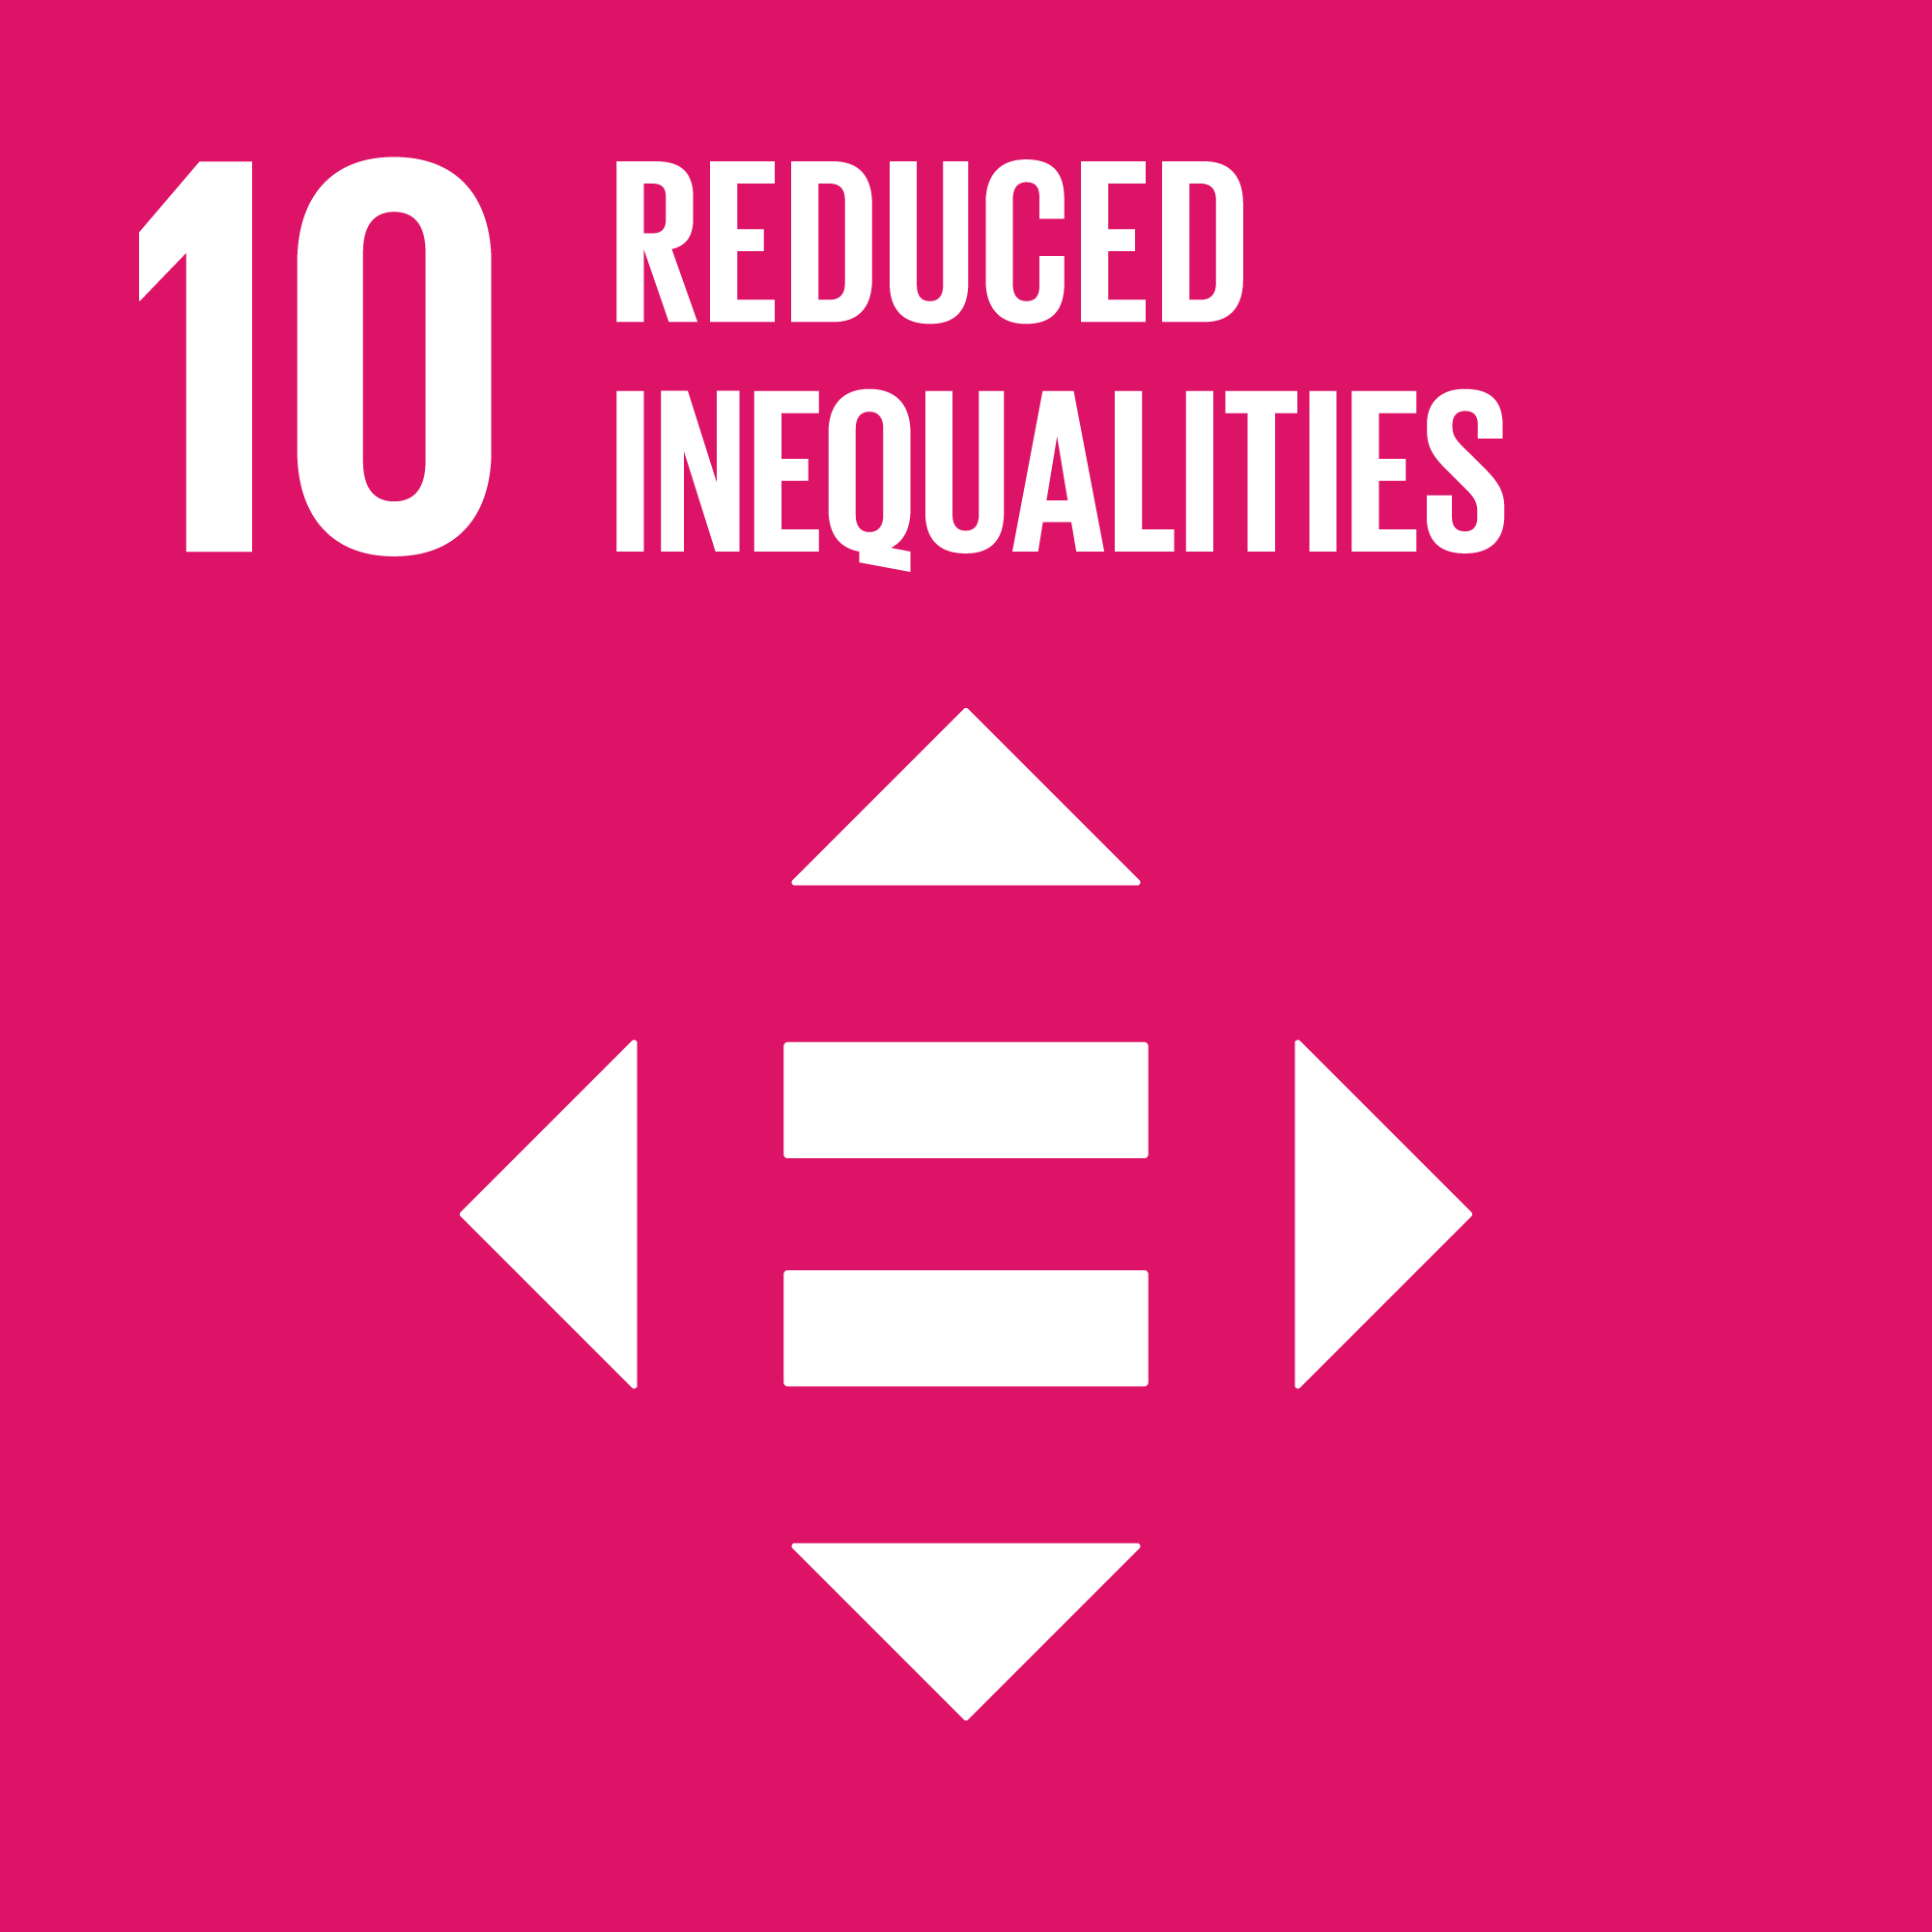 Agenda 2030 goal number 10: reduced inequalities